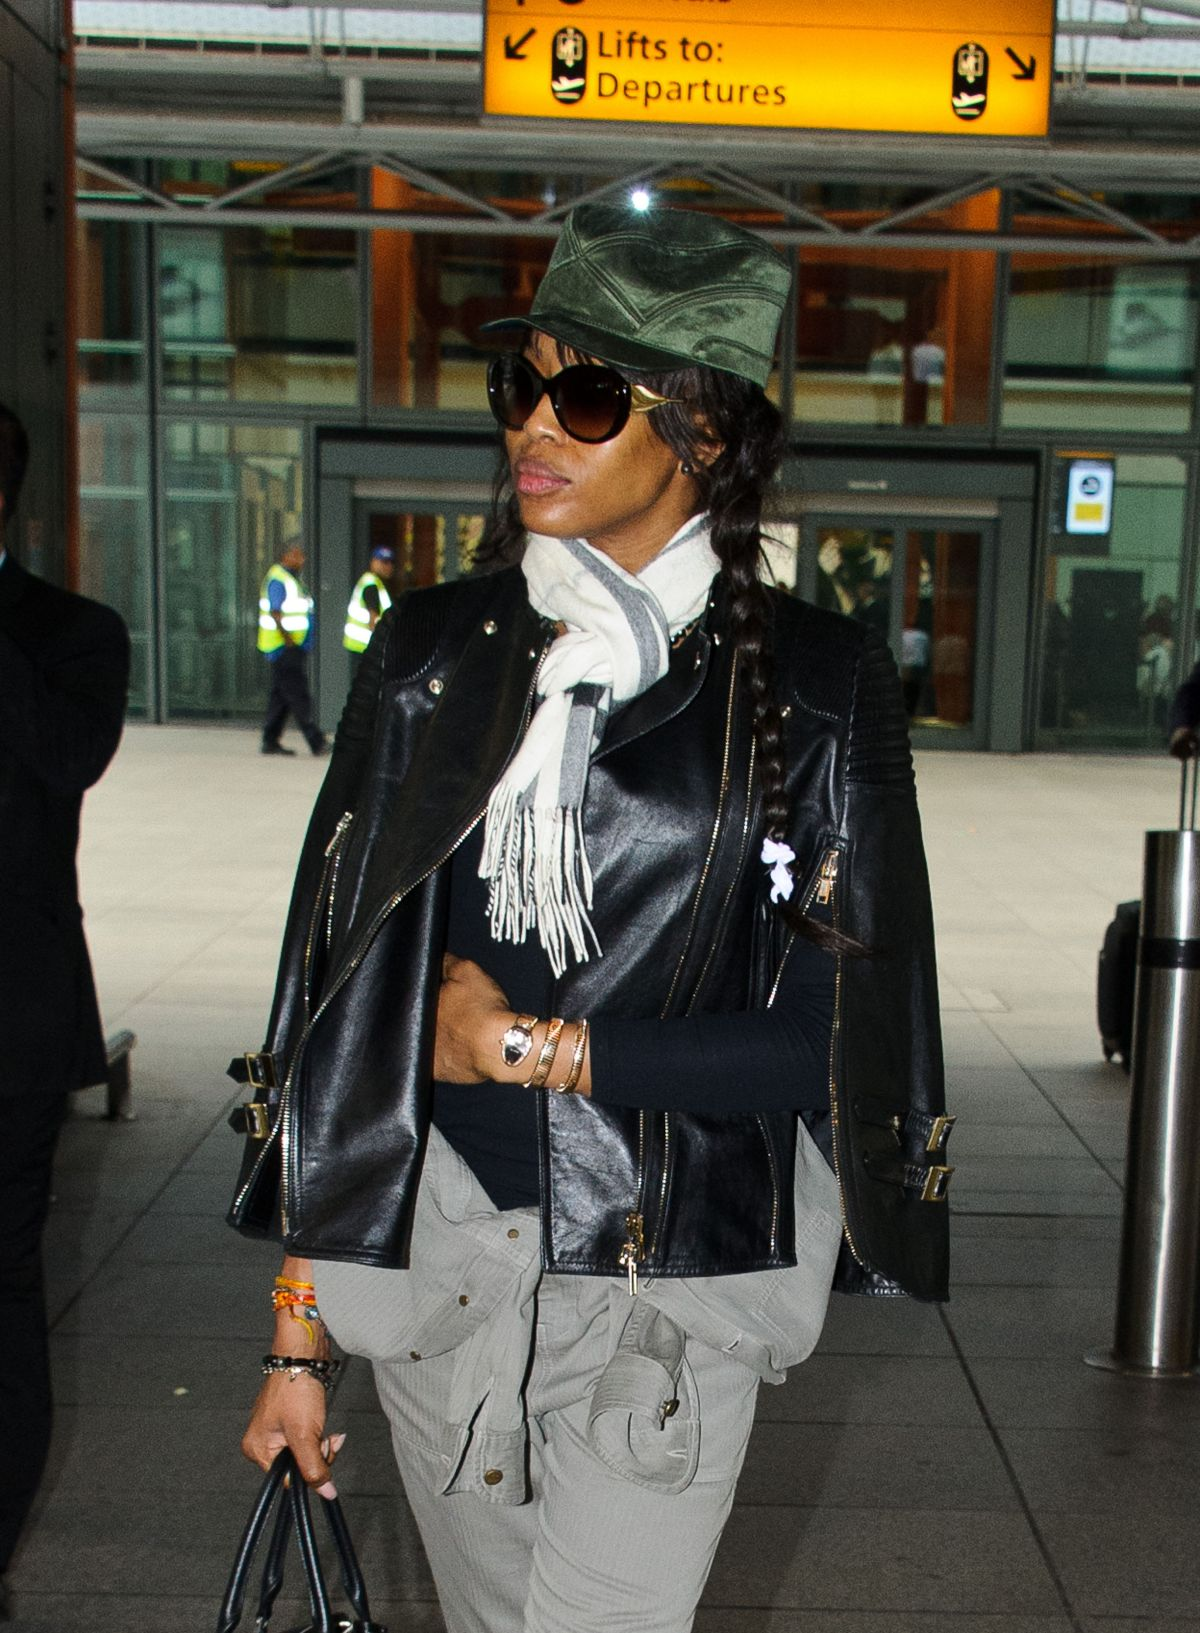 NAOMI CAMPBELL at Heathrow Airport in London 06/12/2016